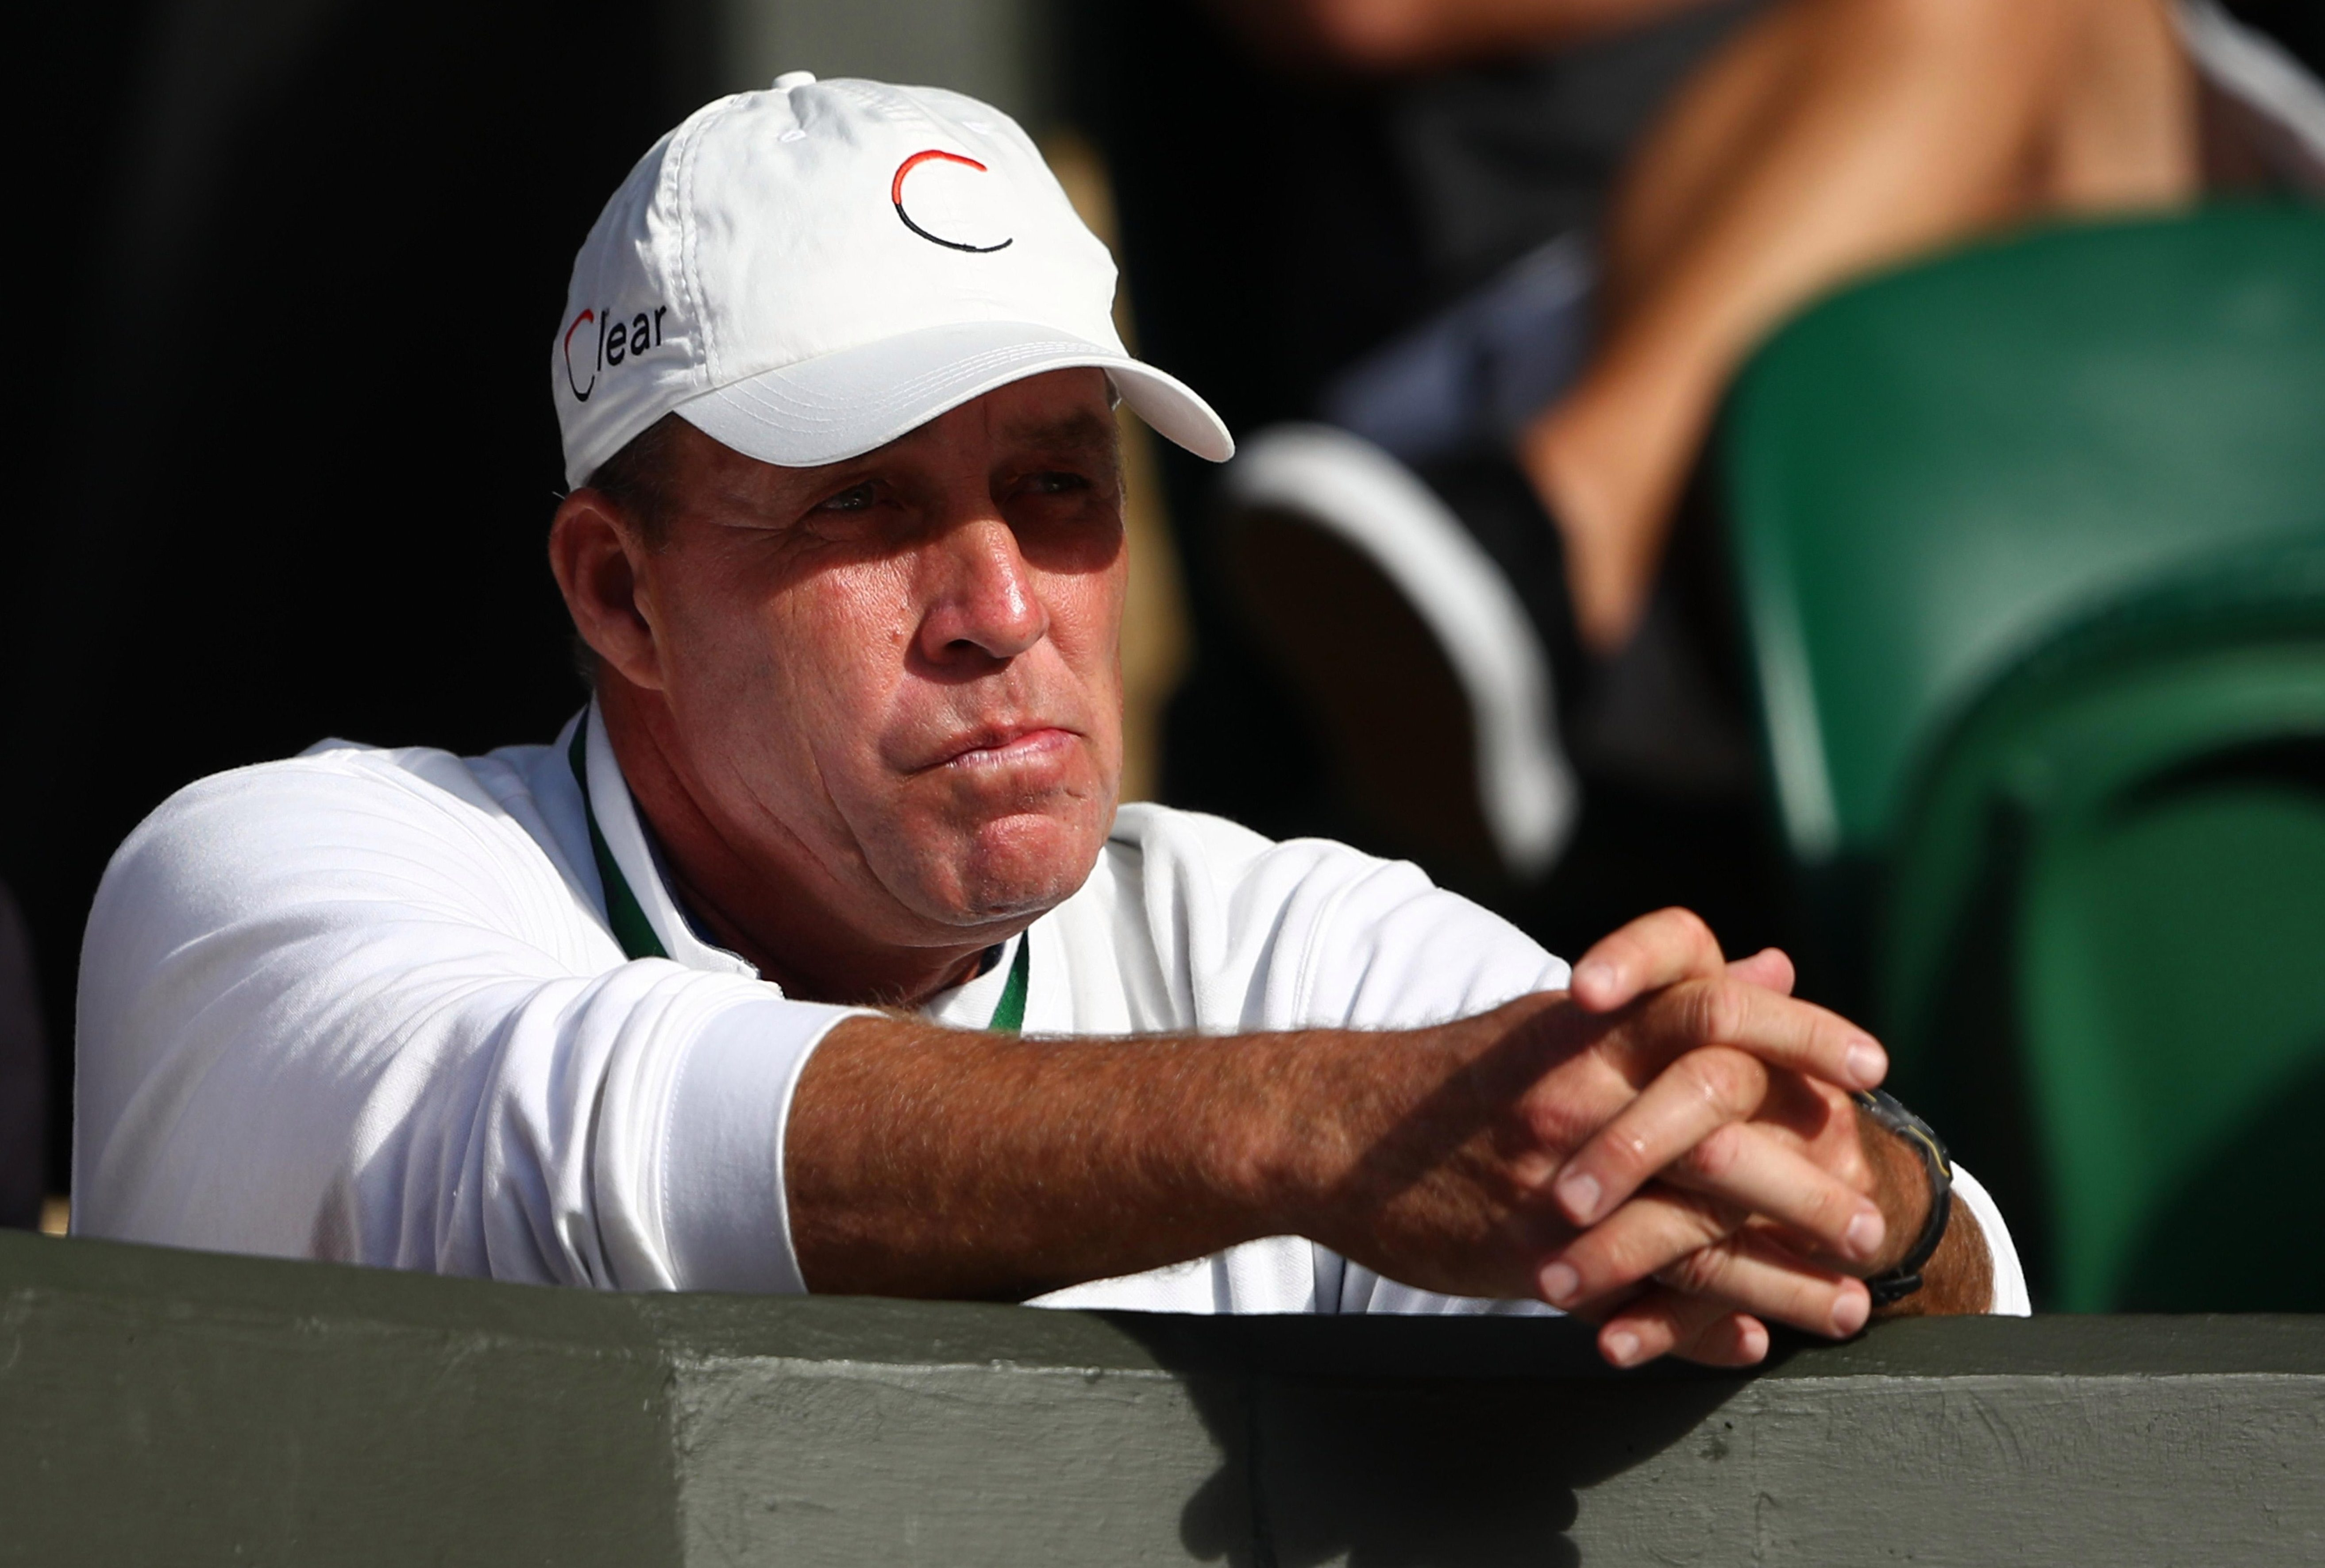 Ivan Lendl was Andy Murray's coach between 2011 and 2014 and then again from 2016 to 2017